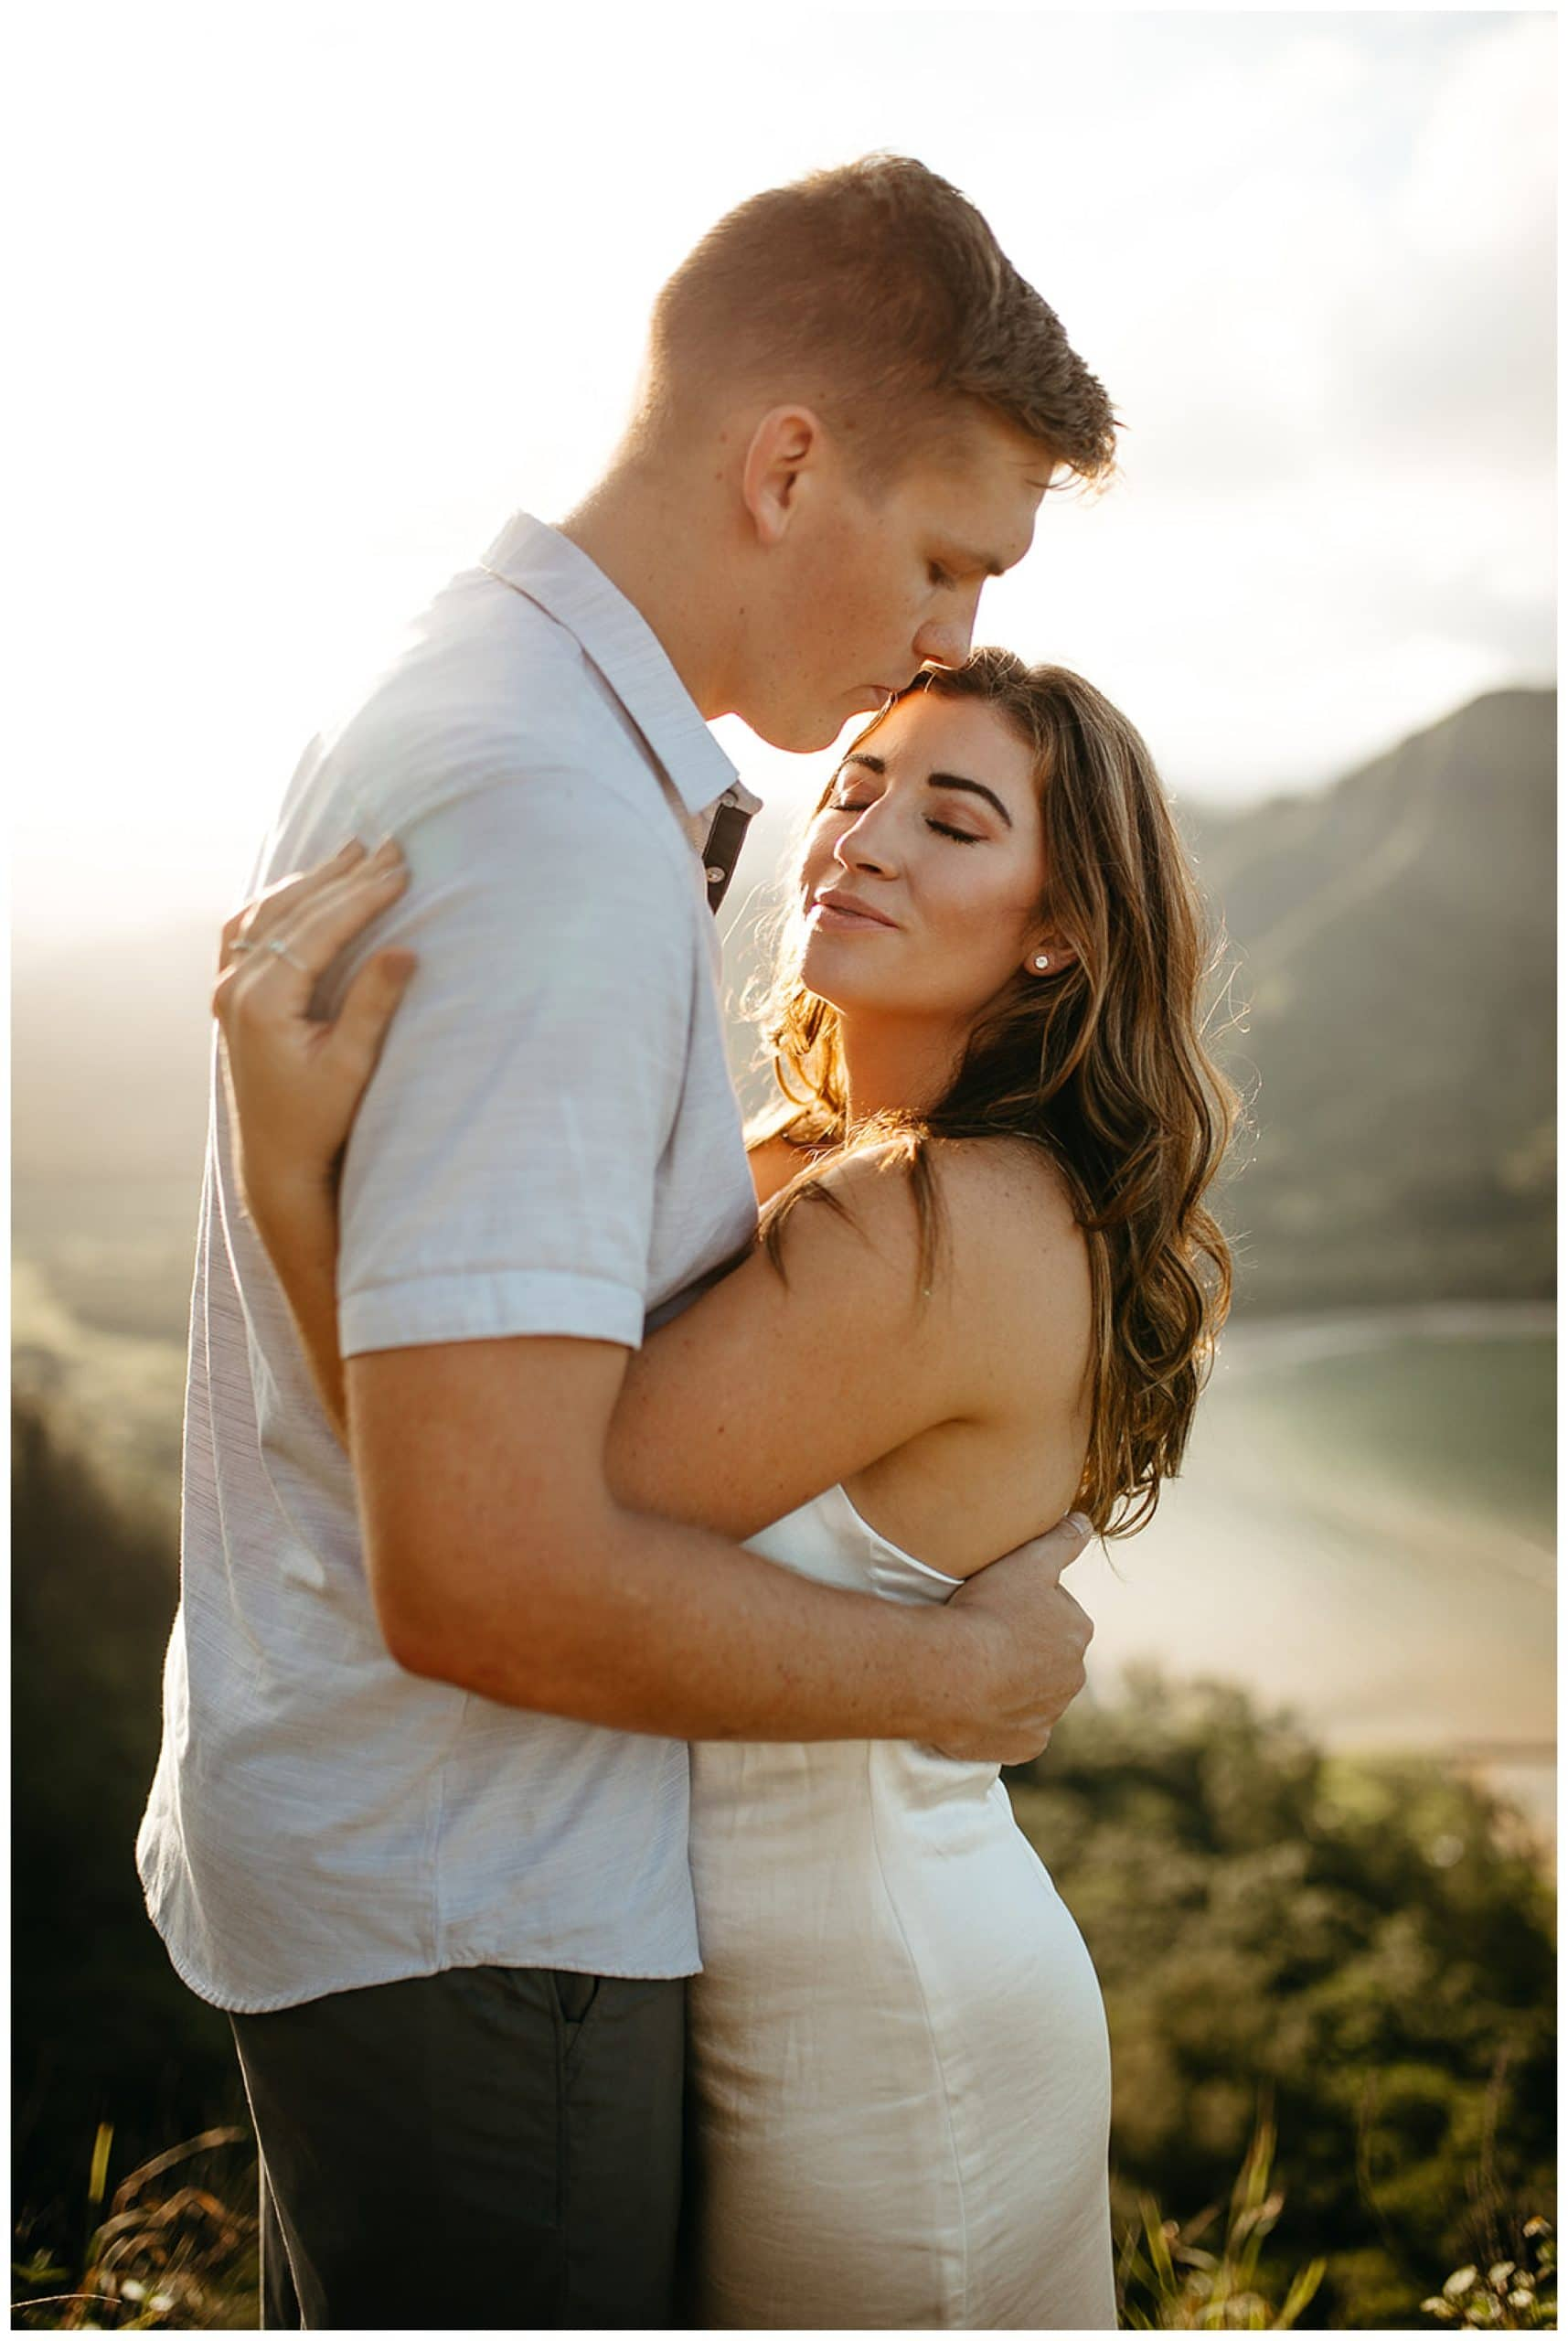 husband kissing wife's head at sunset